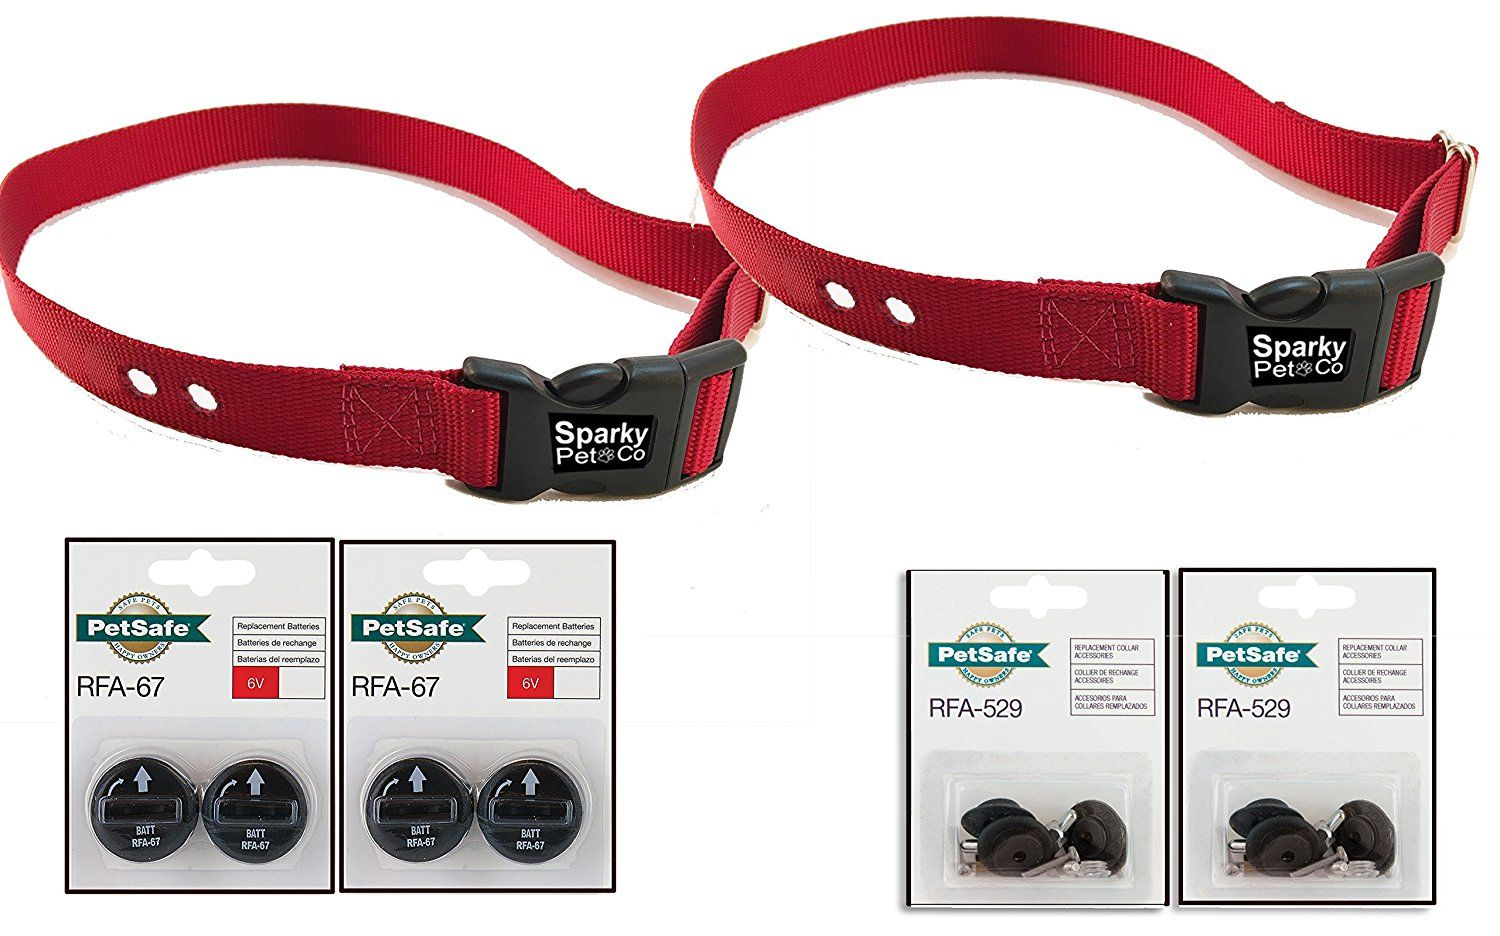 Sparky Petco Petsafe Compatible Replacement 2 1 Heavy Duty Dog Straps With 2 Rfa 529 Kits And 4 Rfa 67 D 11 Ba Dog Training Pads Petco Dog Training Collar